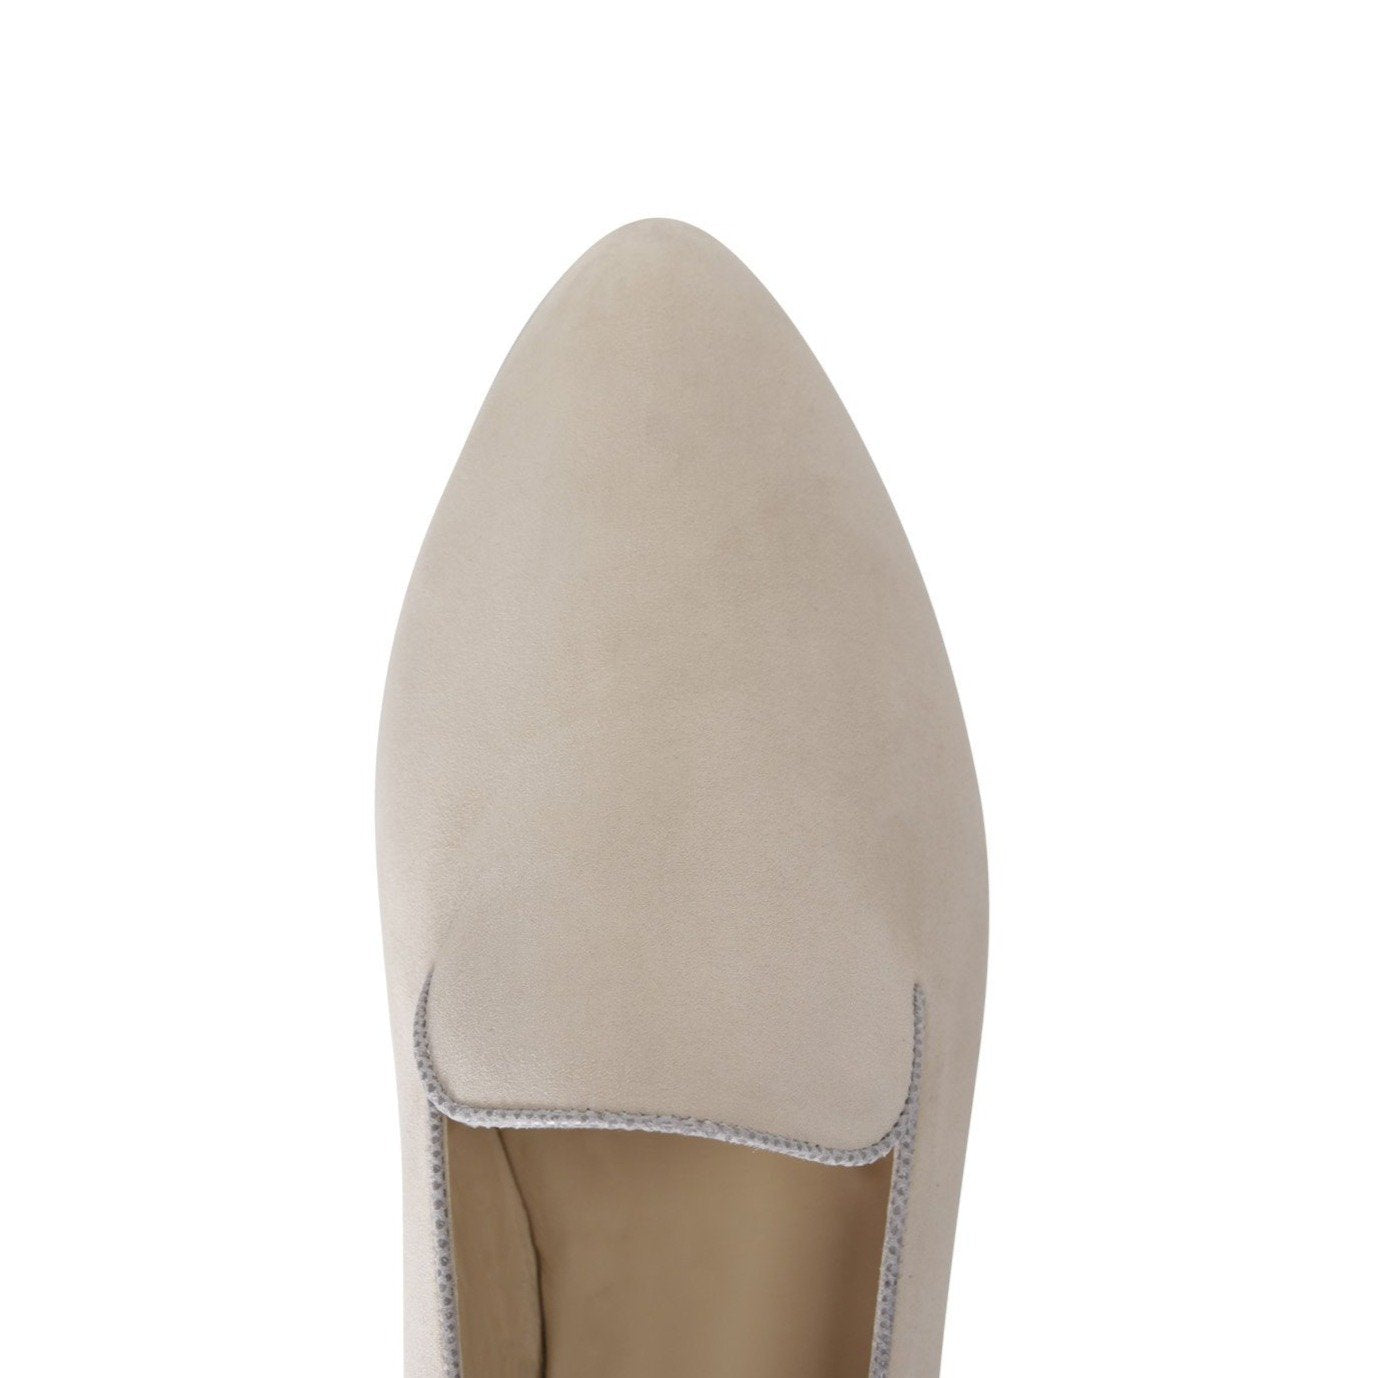 RAVENNA - Velukid Tan + Karung Grigio, VIAJIYU - Women's Hand Made Sustainable Luxury Shoes. Made in Italy. Made to Order.